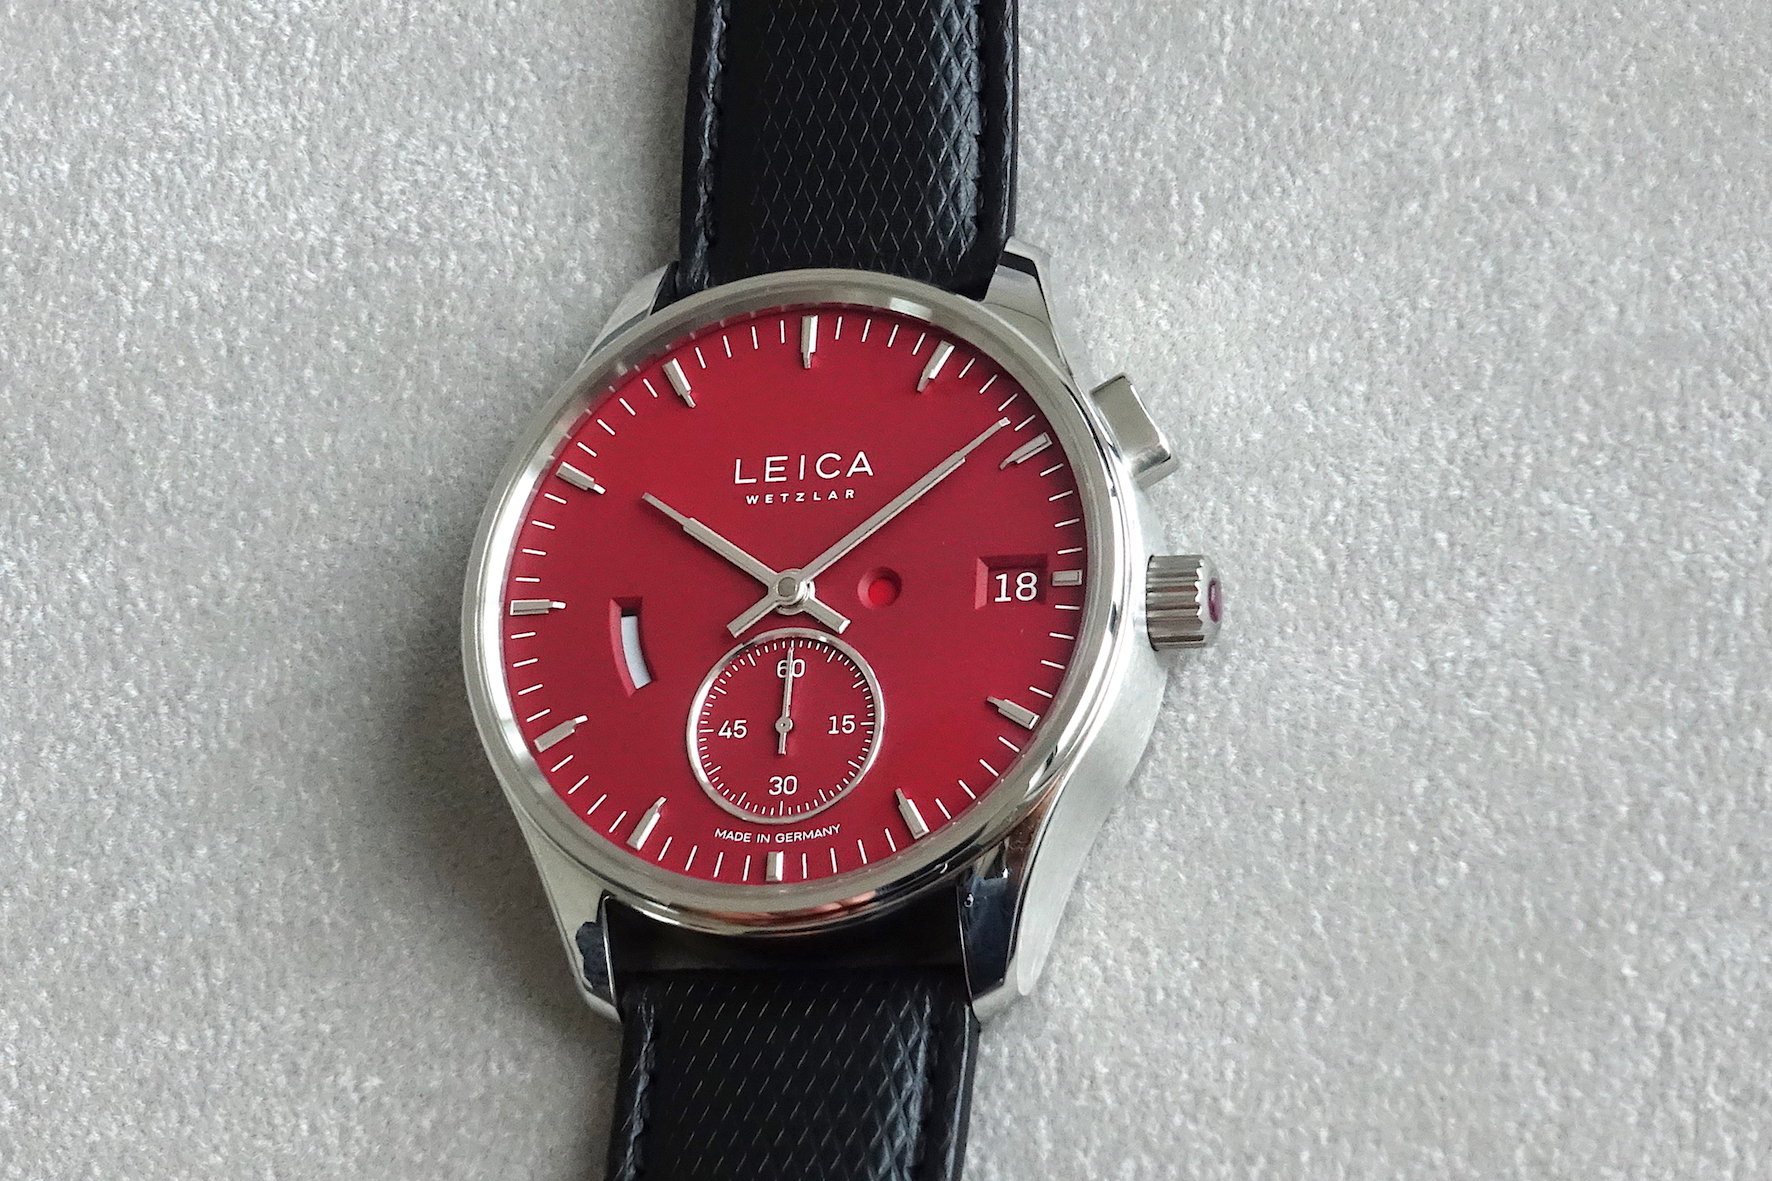 Leica L1 red when the Zero-Reset is activated (little red dot on the dial)